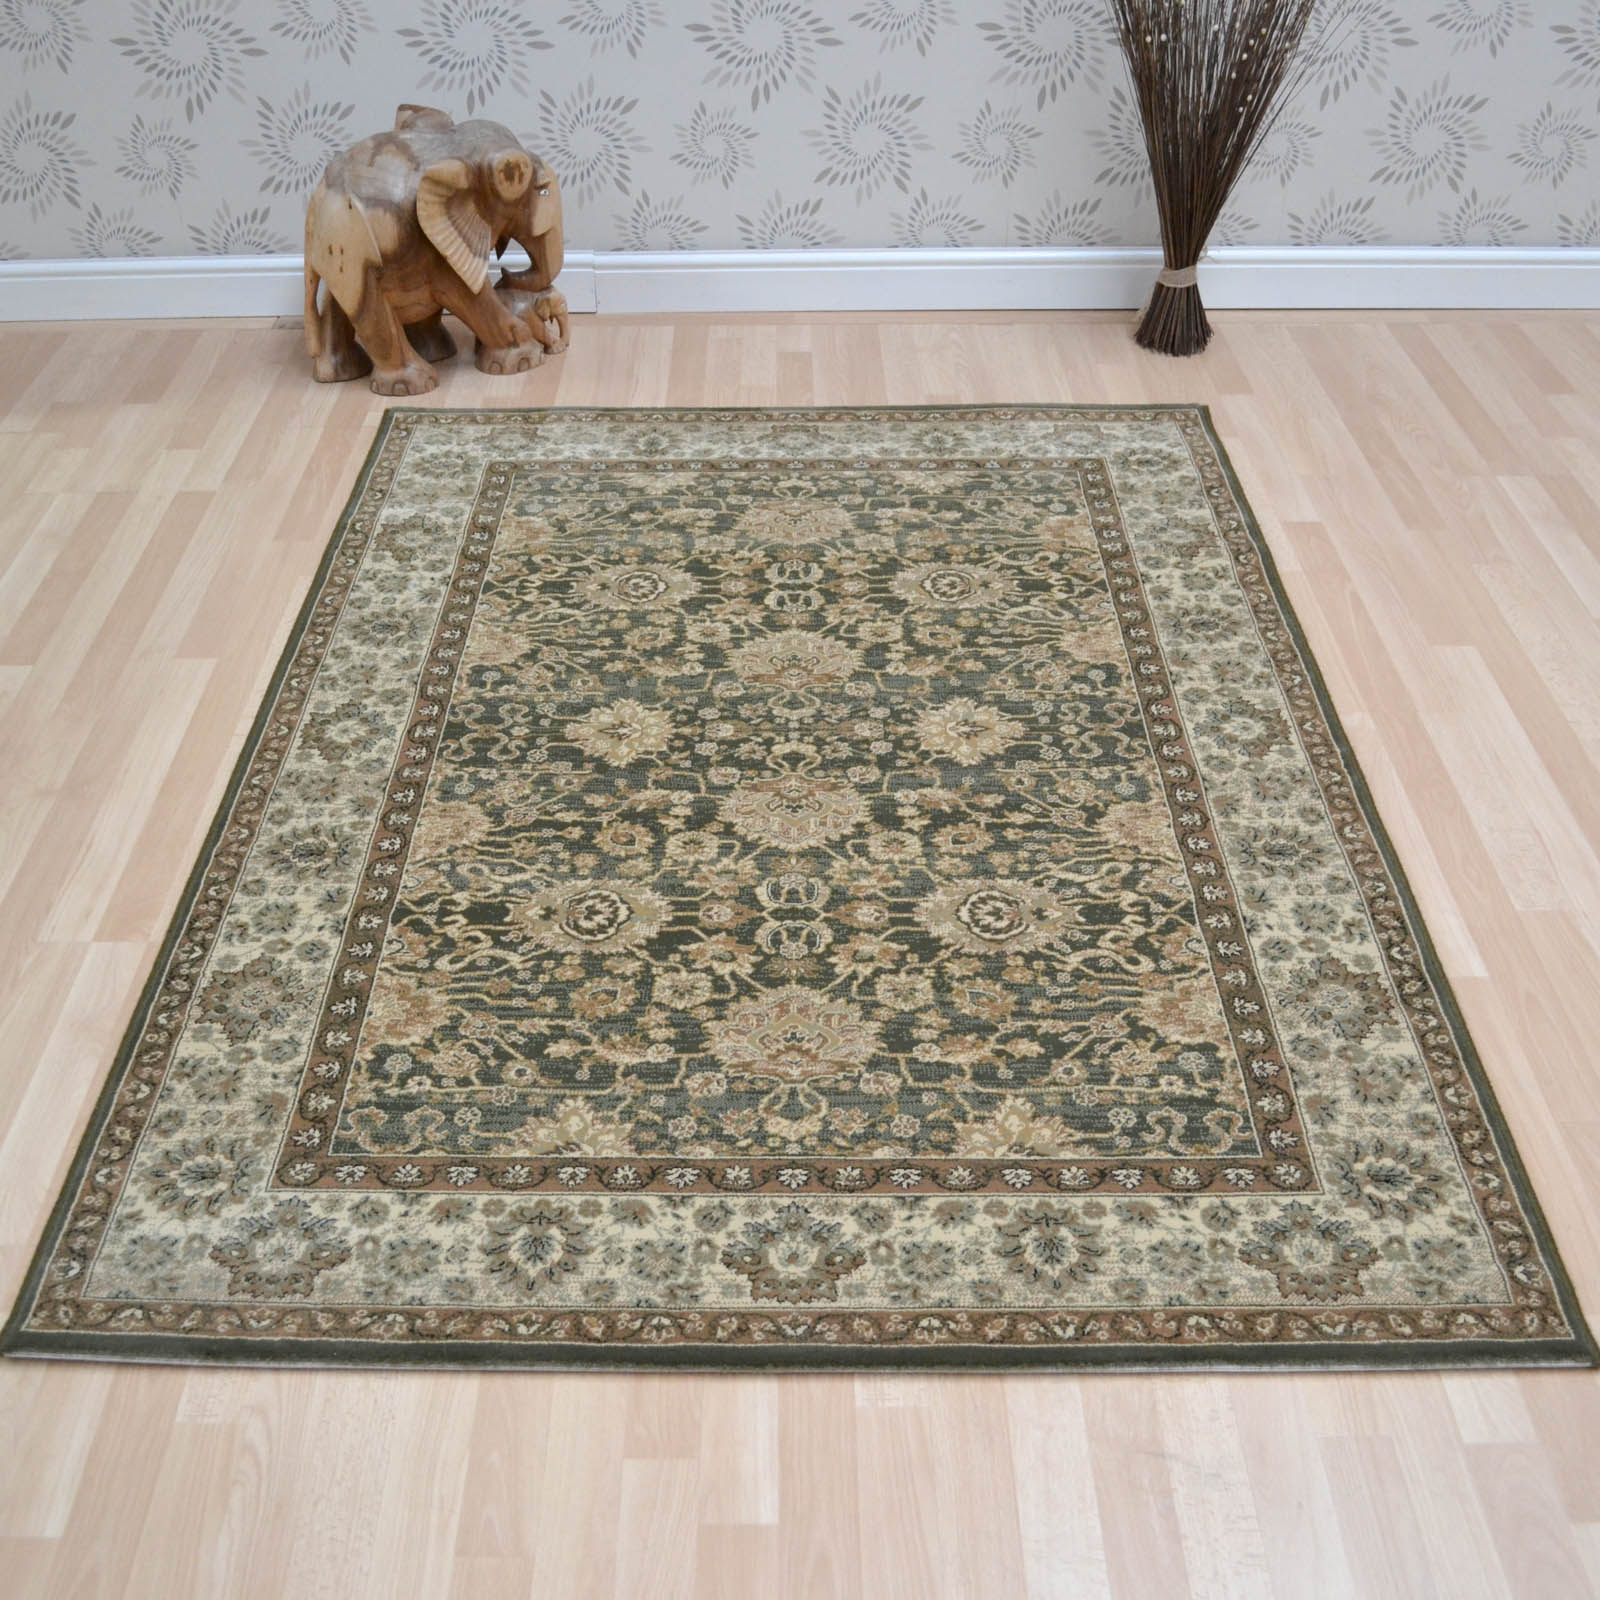 Kamira Rugs 4472 803 Dark Green